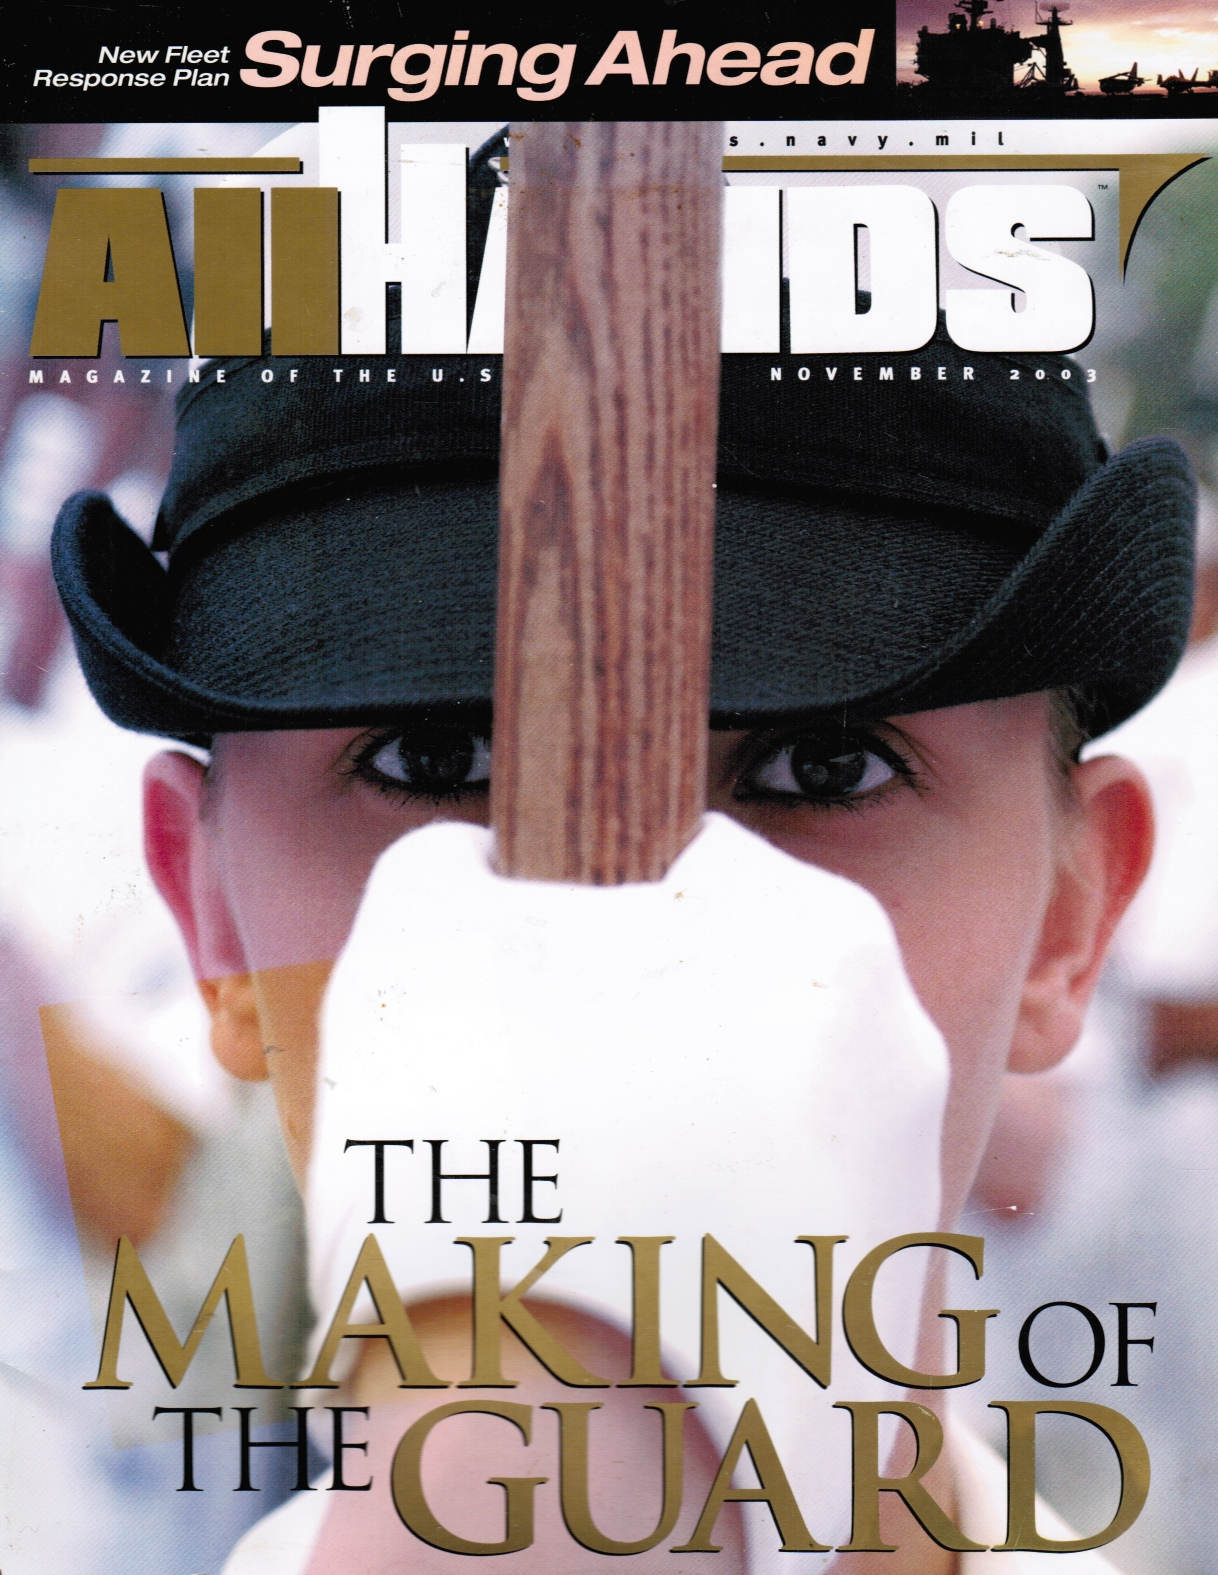 Image for All Hands: the Making of the Guard (US Navy Ceremonial Guard)